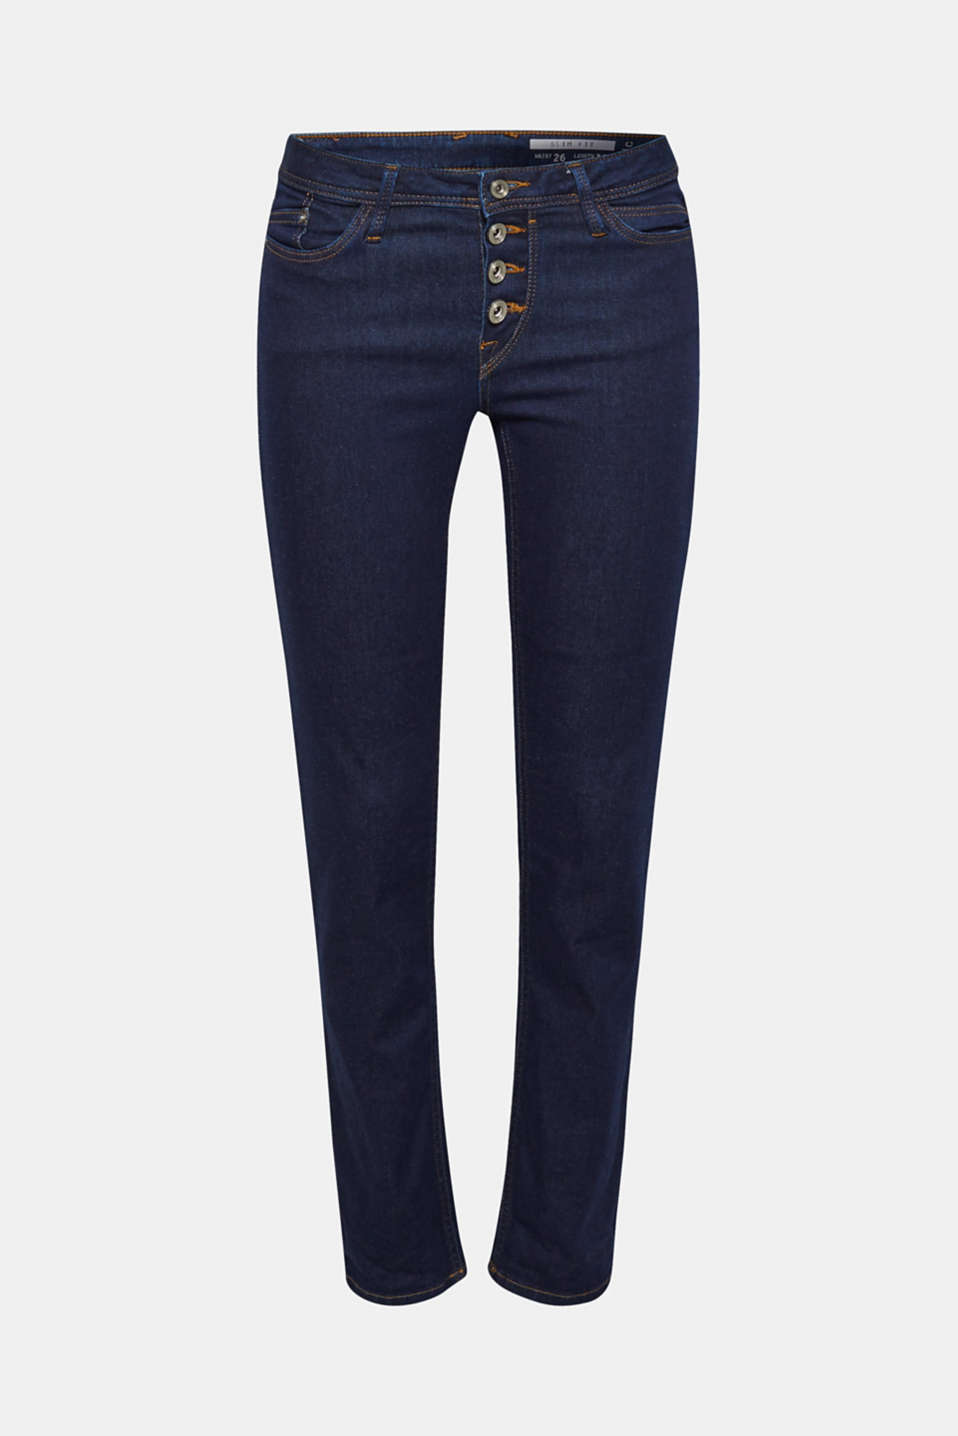 A sexy, slim fit and a cool button placket – what more could you ask for of your new favourite pair of jeans?